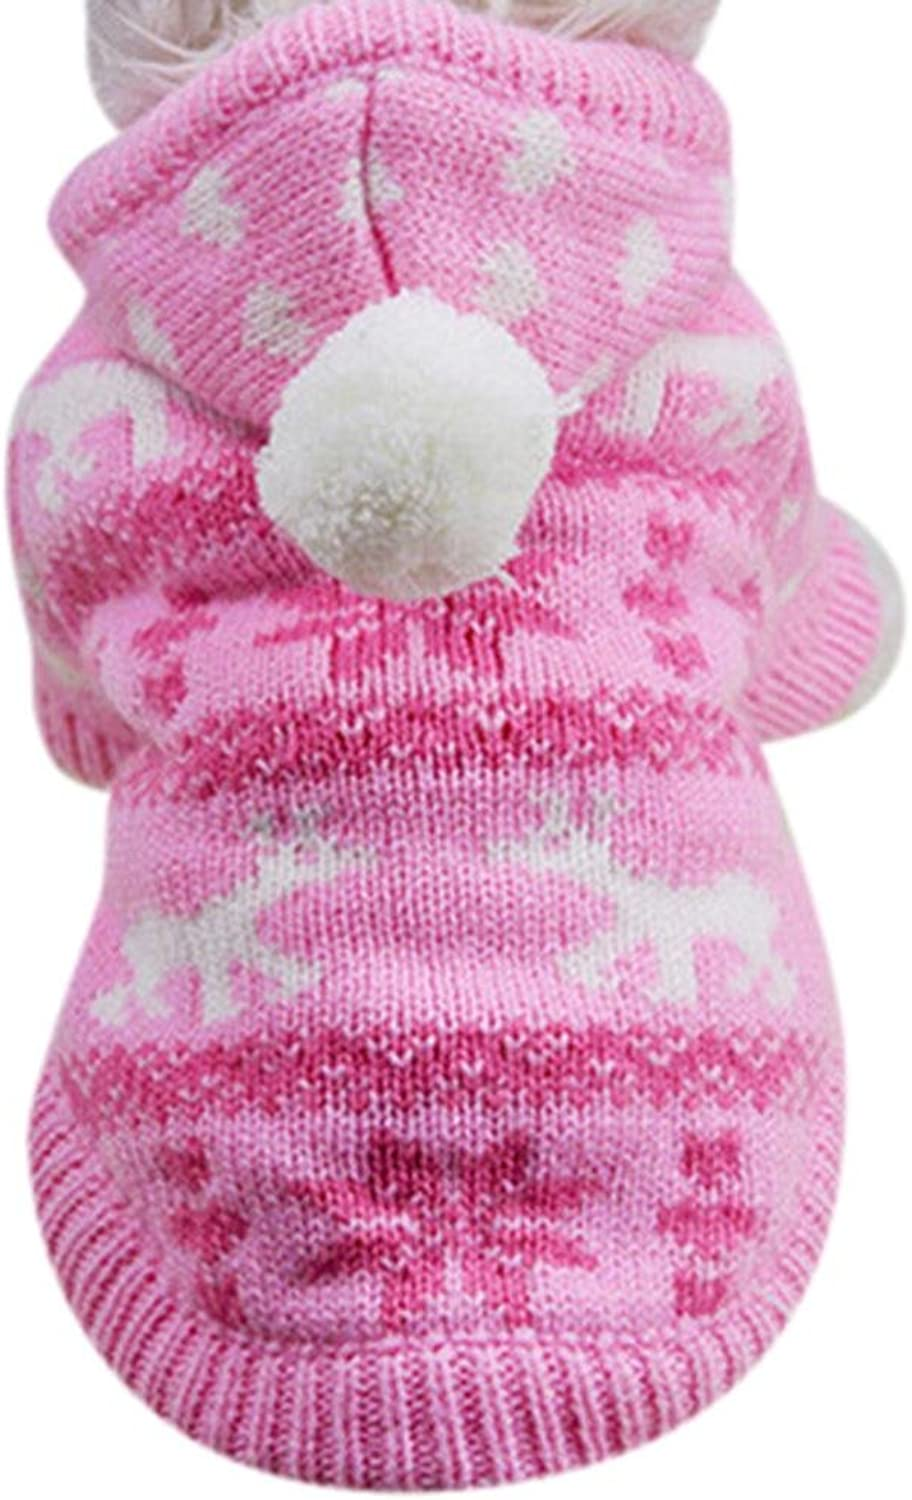 (Medium, Pink)  Mikey Store Knit Dog Hoodie Sweater Puppy Coat Clothes Small Warm Costume